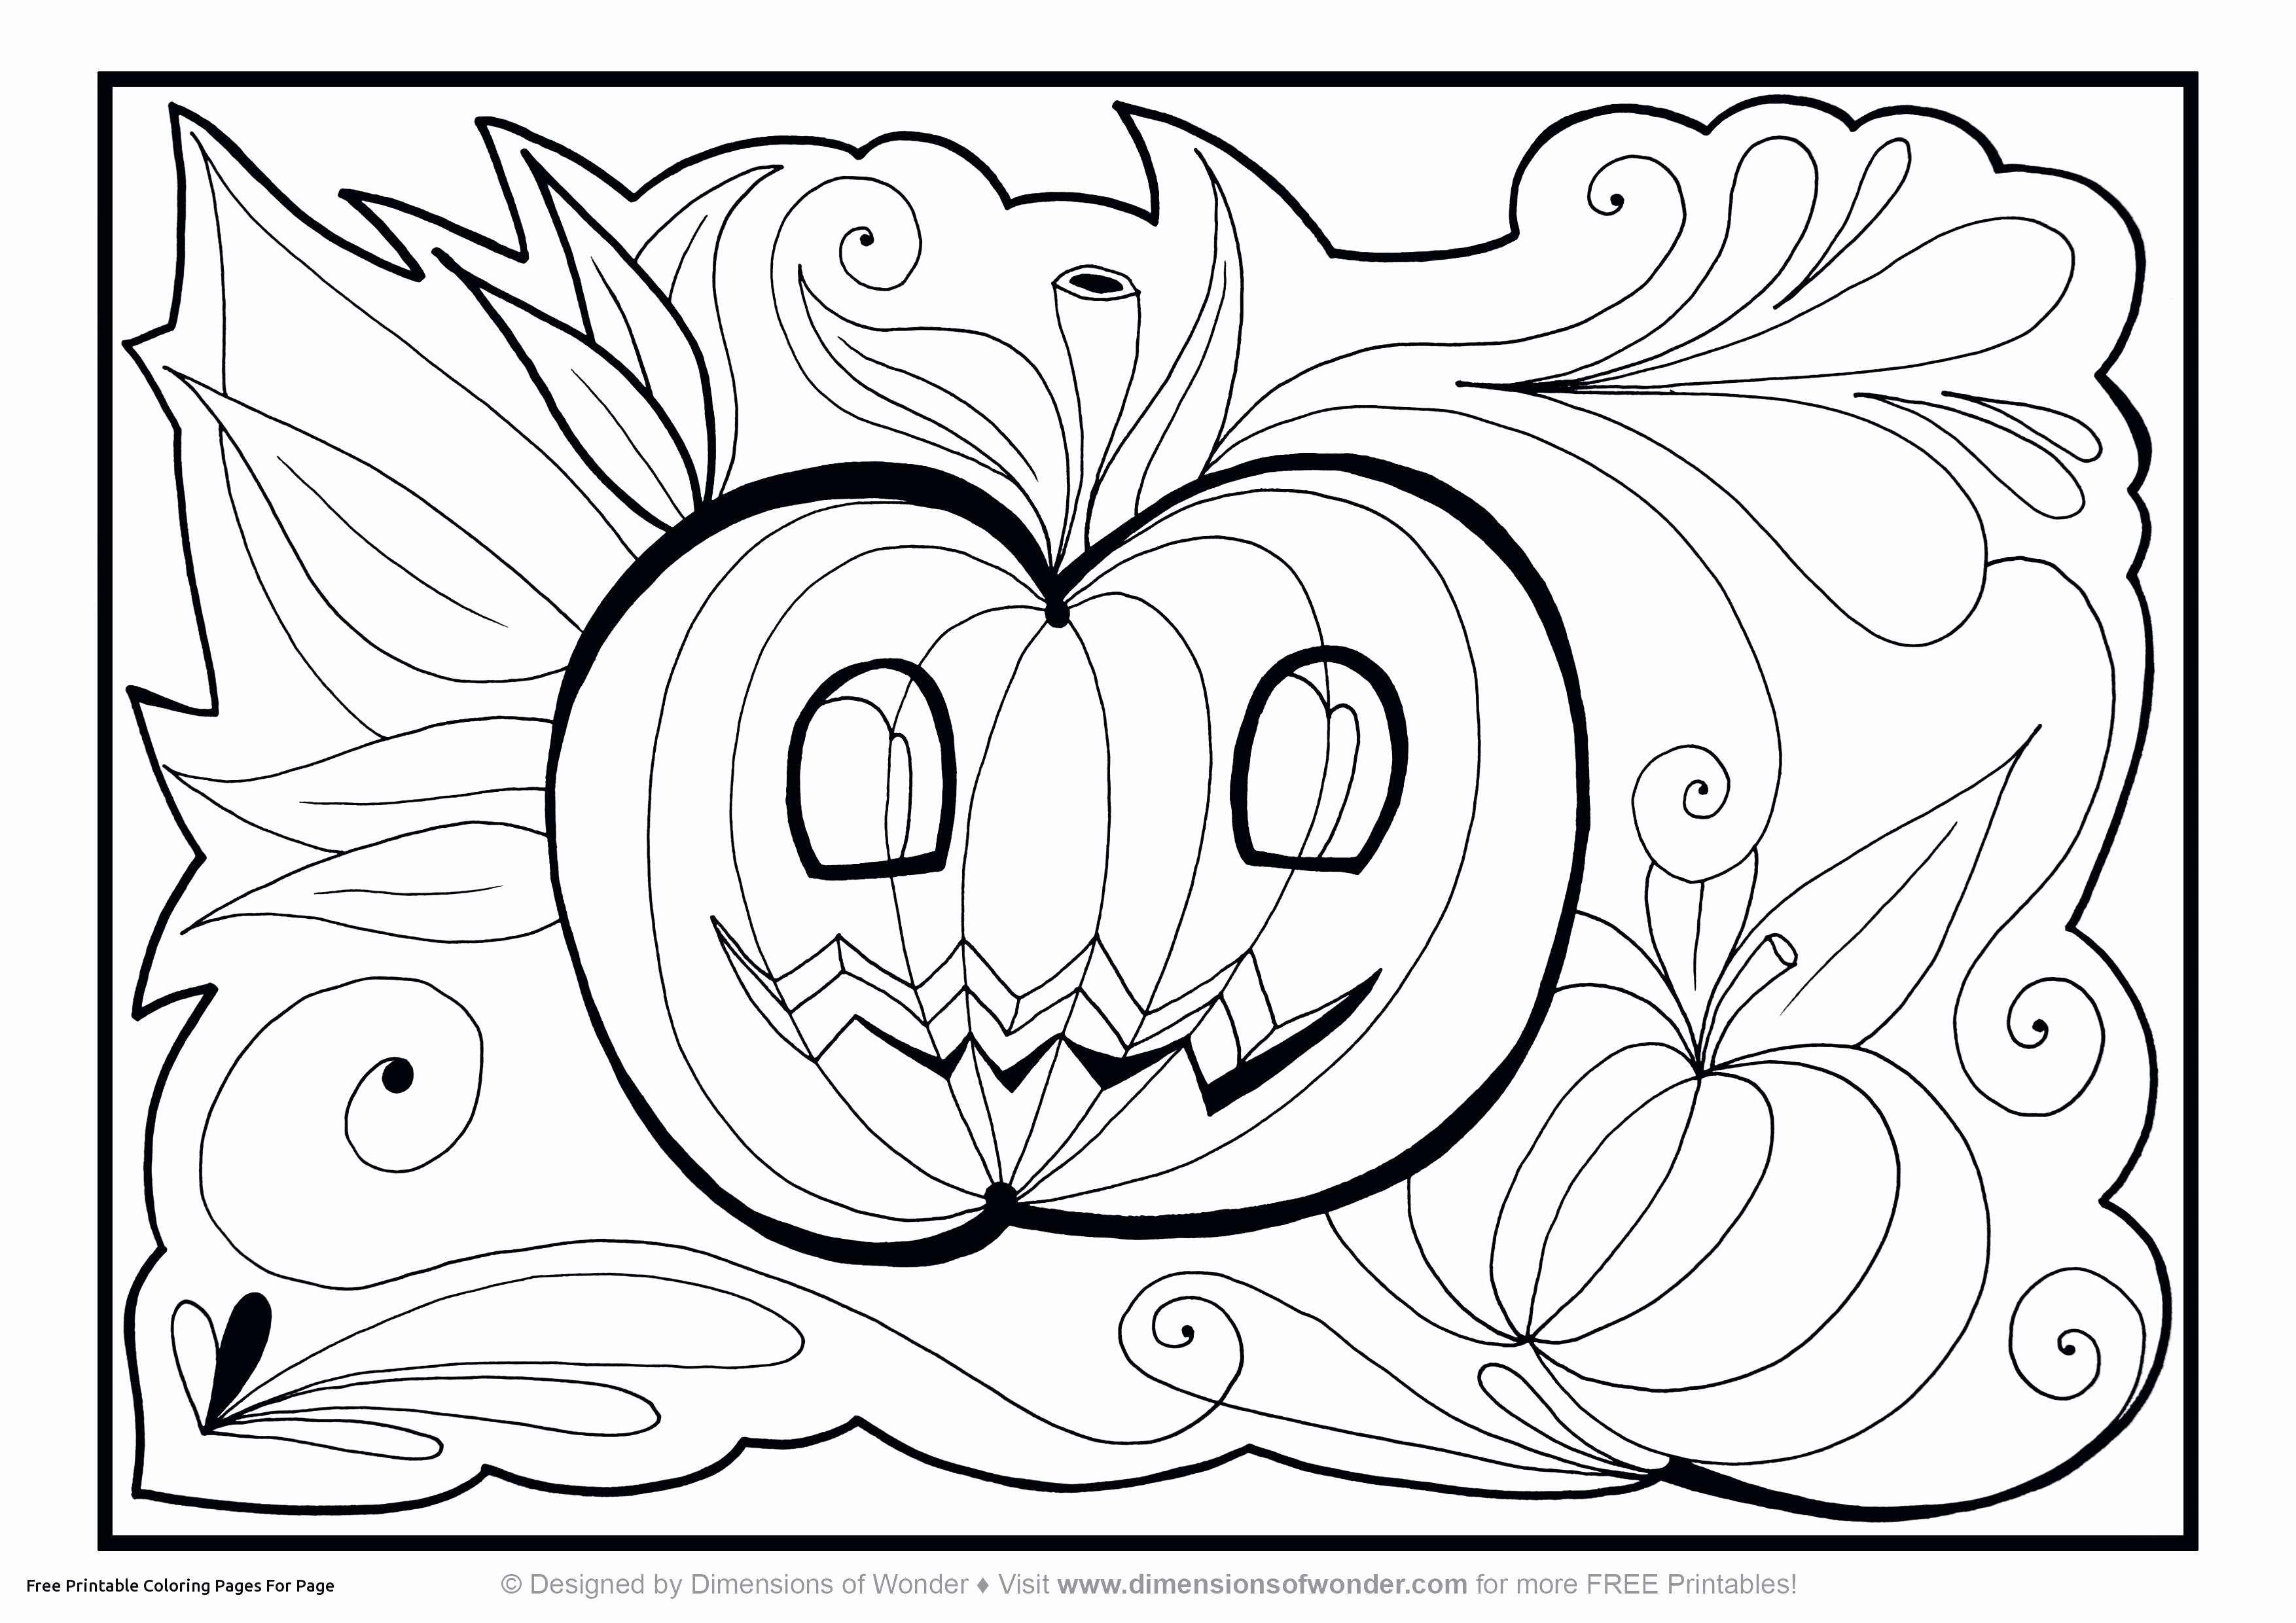 28 Num Noms Coloring Pages Collection Coloring Sheets